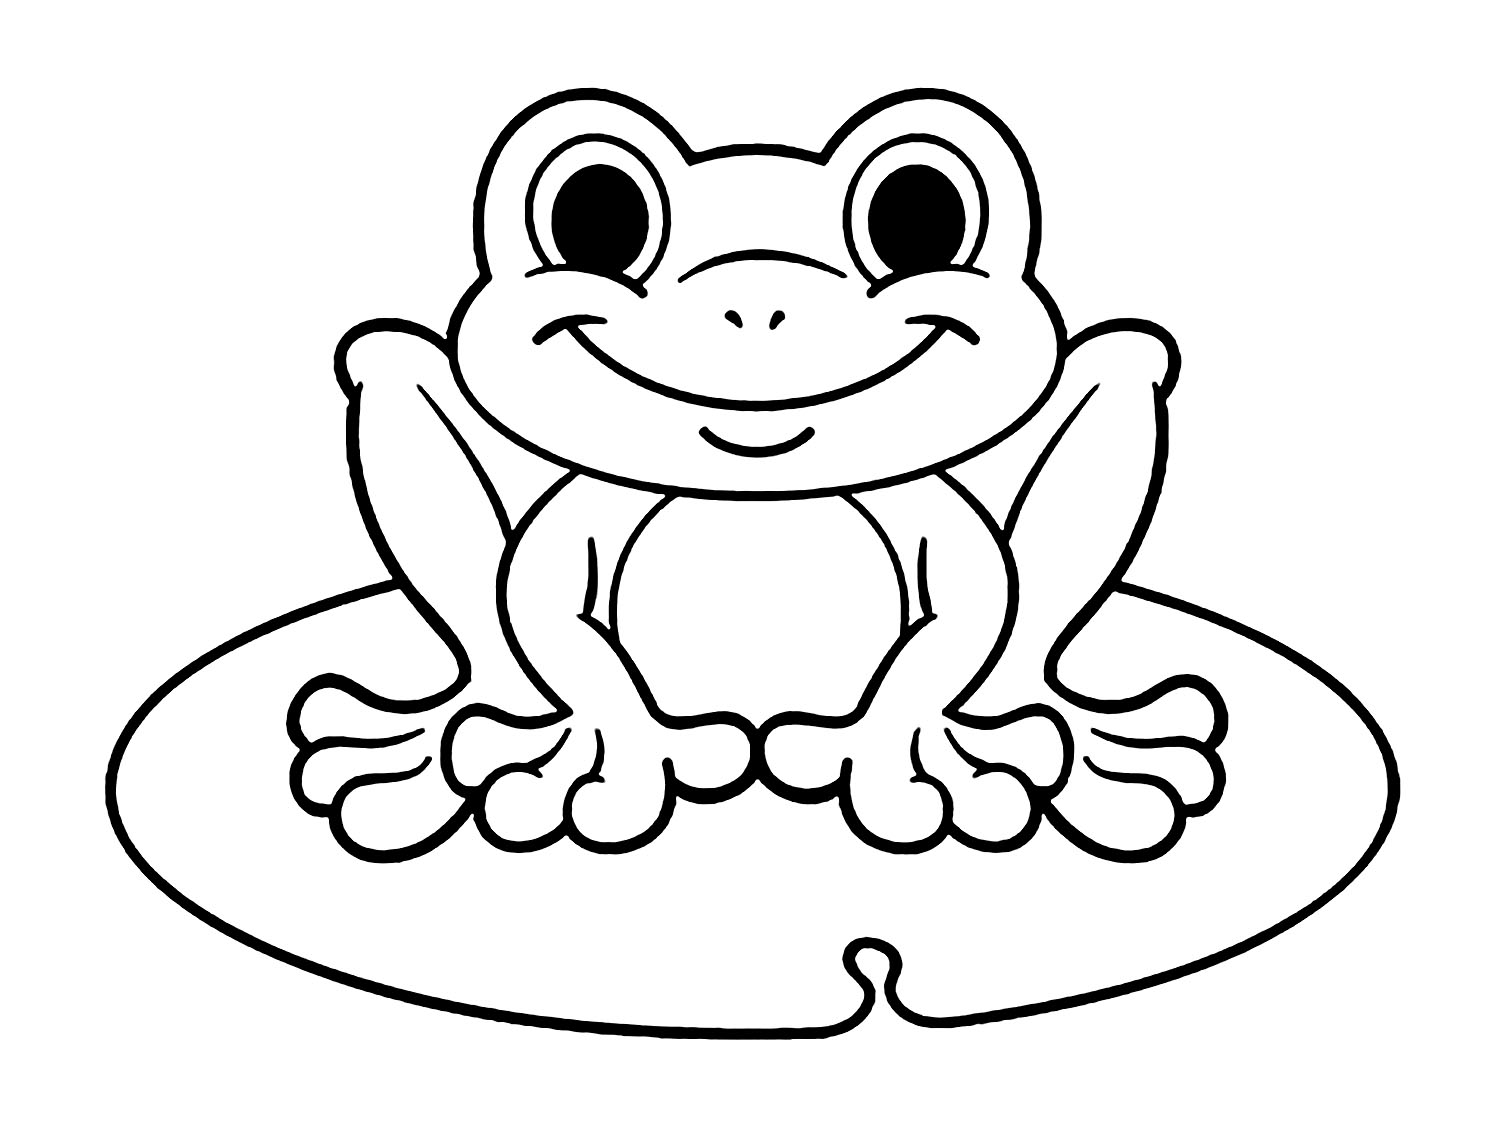 coloring frog outline images cute frog coloring page free clip art outline coloring frog images